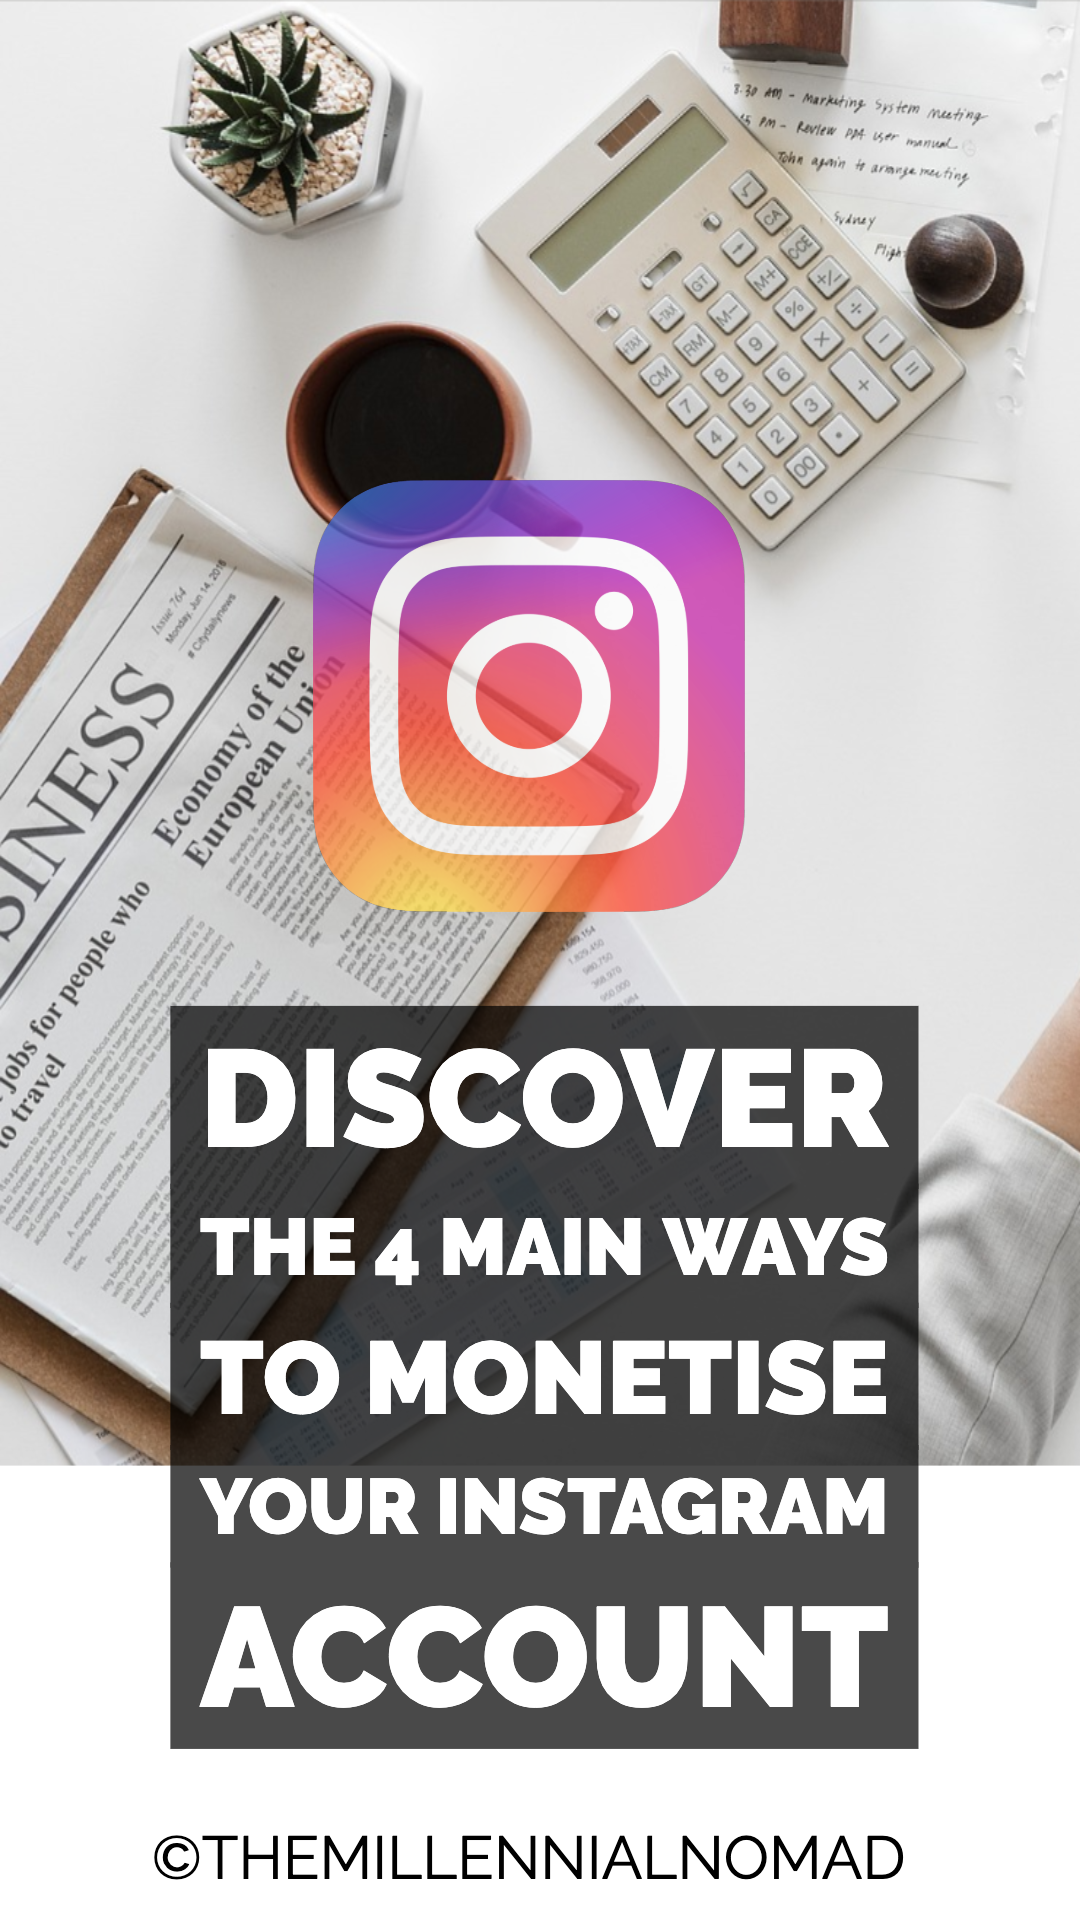 Discover the 4 main ways to monetise your instagram account. #instagramforbusiness #instagrammarketing #instagramtips